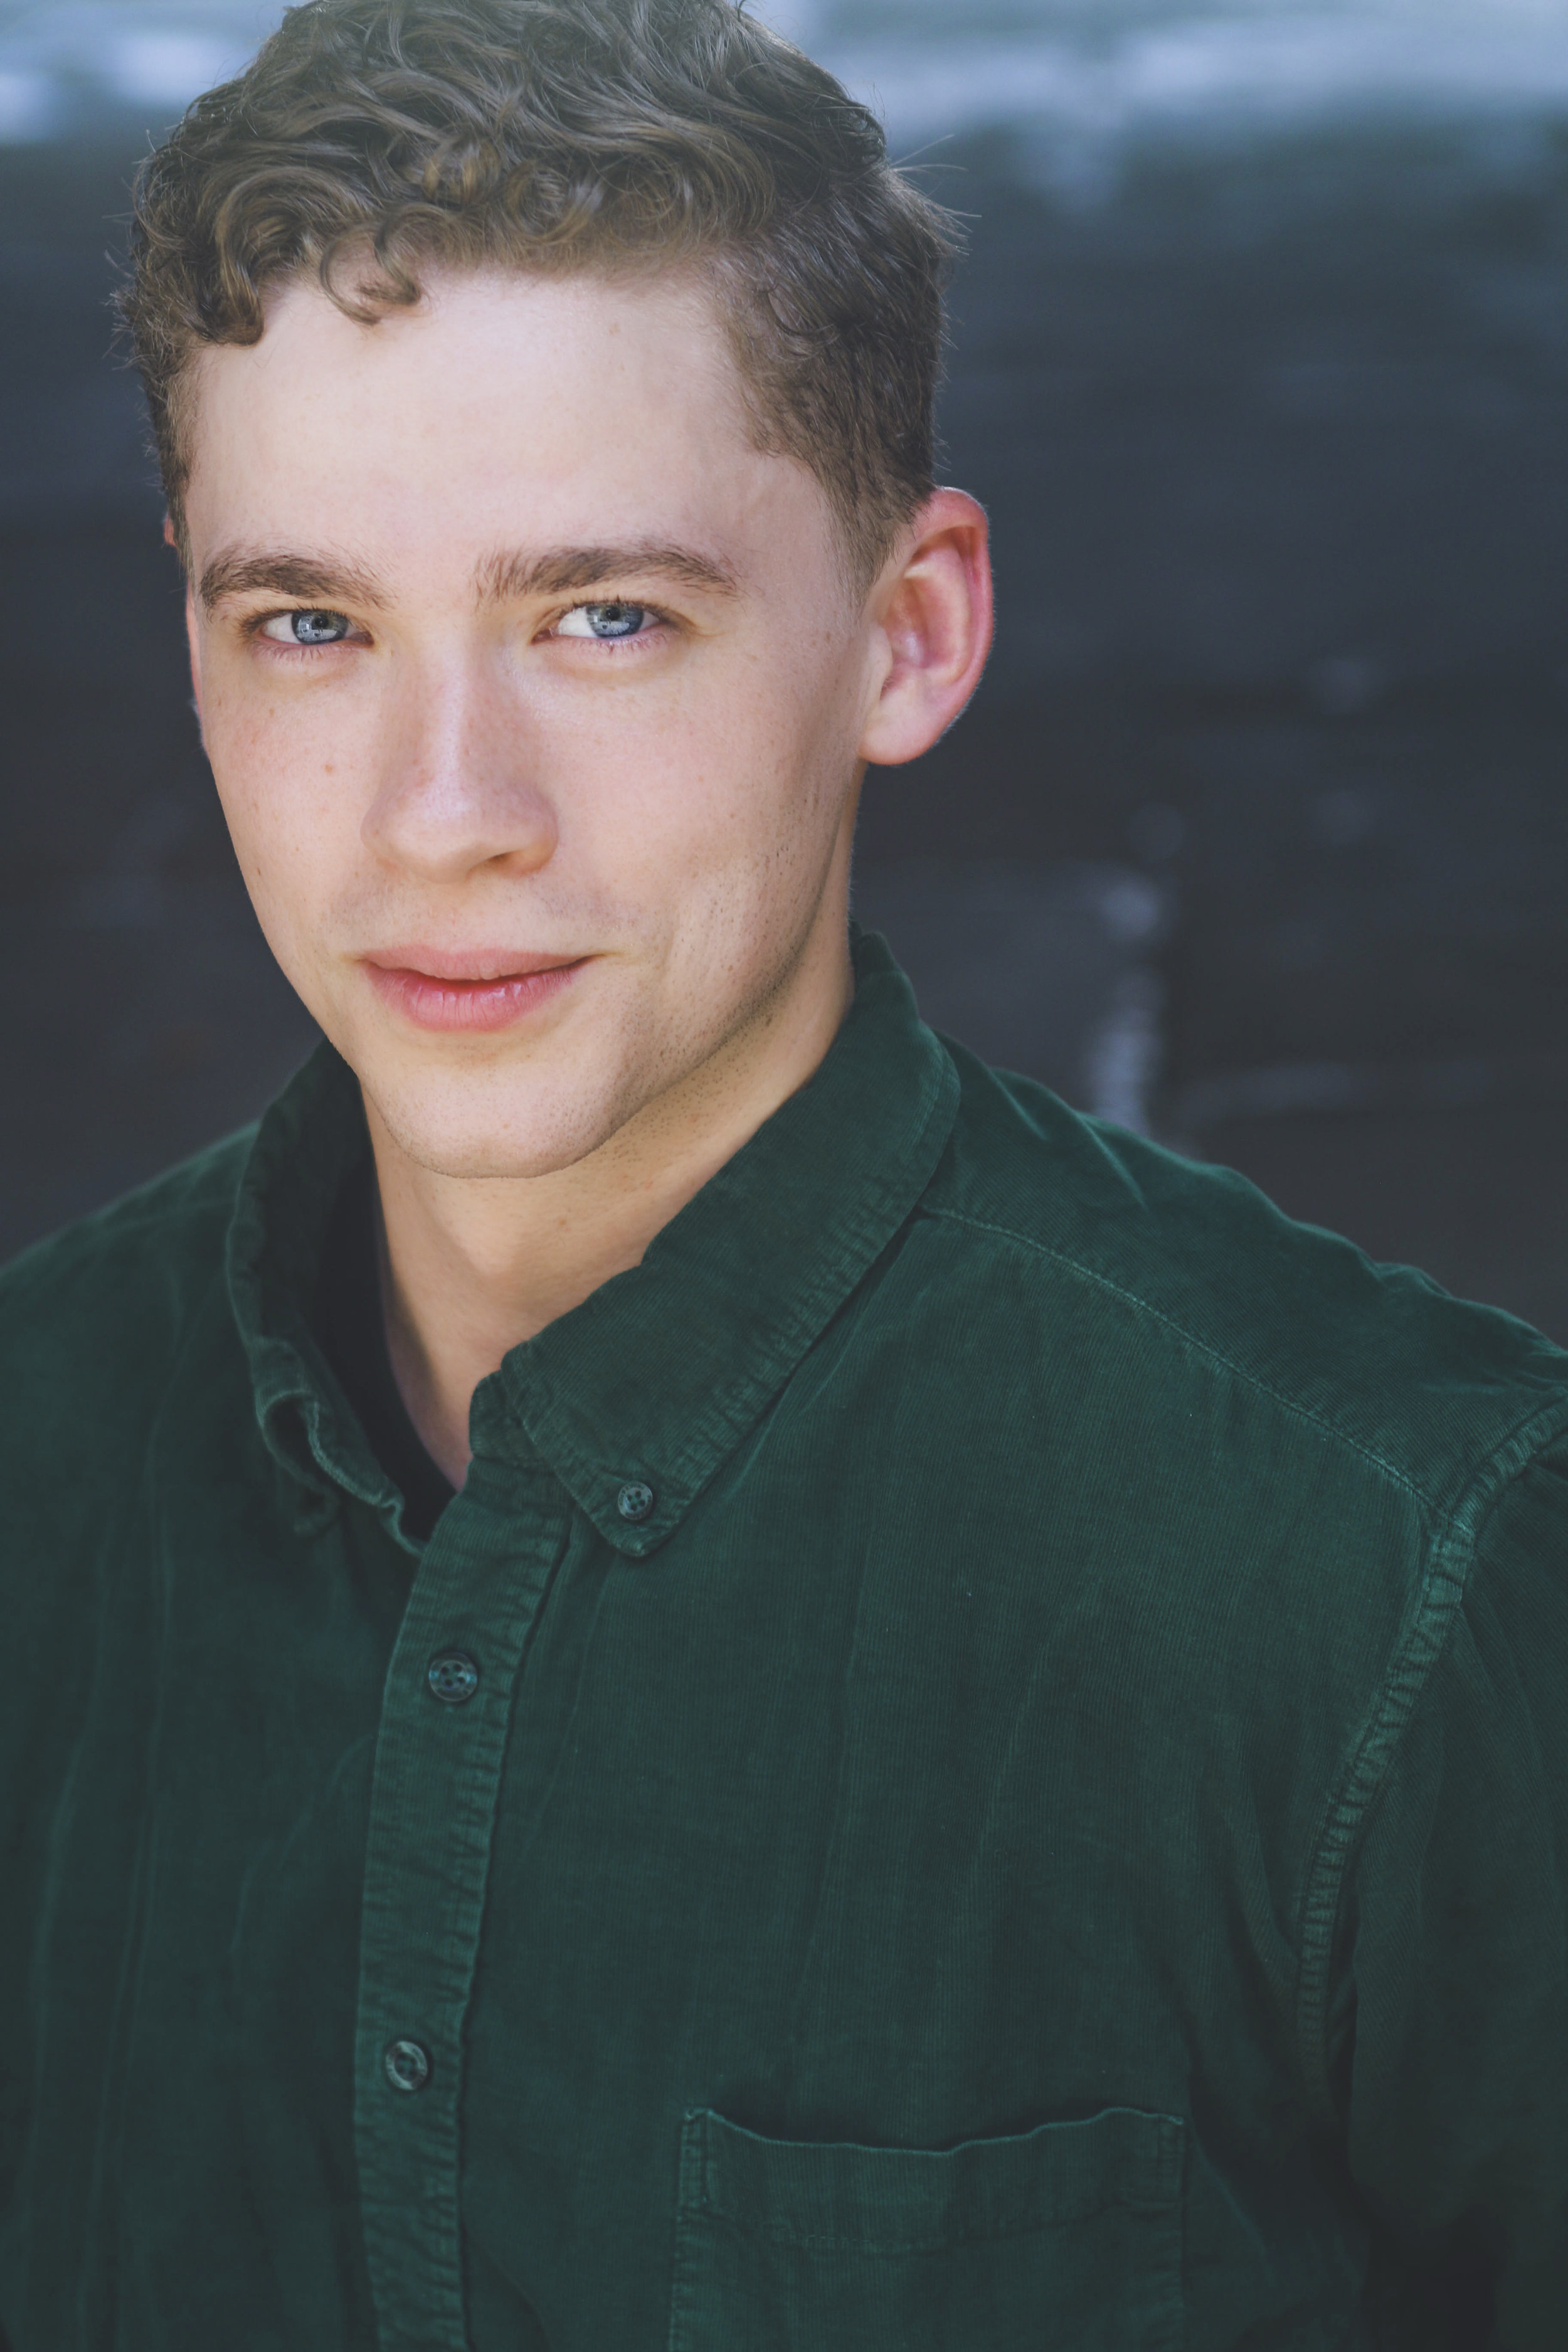 Nate DeCook - NYC based Actor and SingerYou know. If you're looking for that sort of thing.